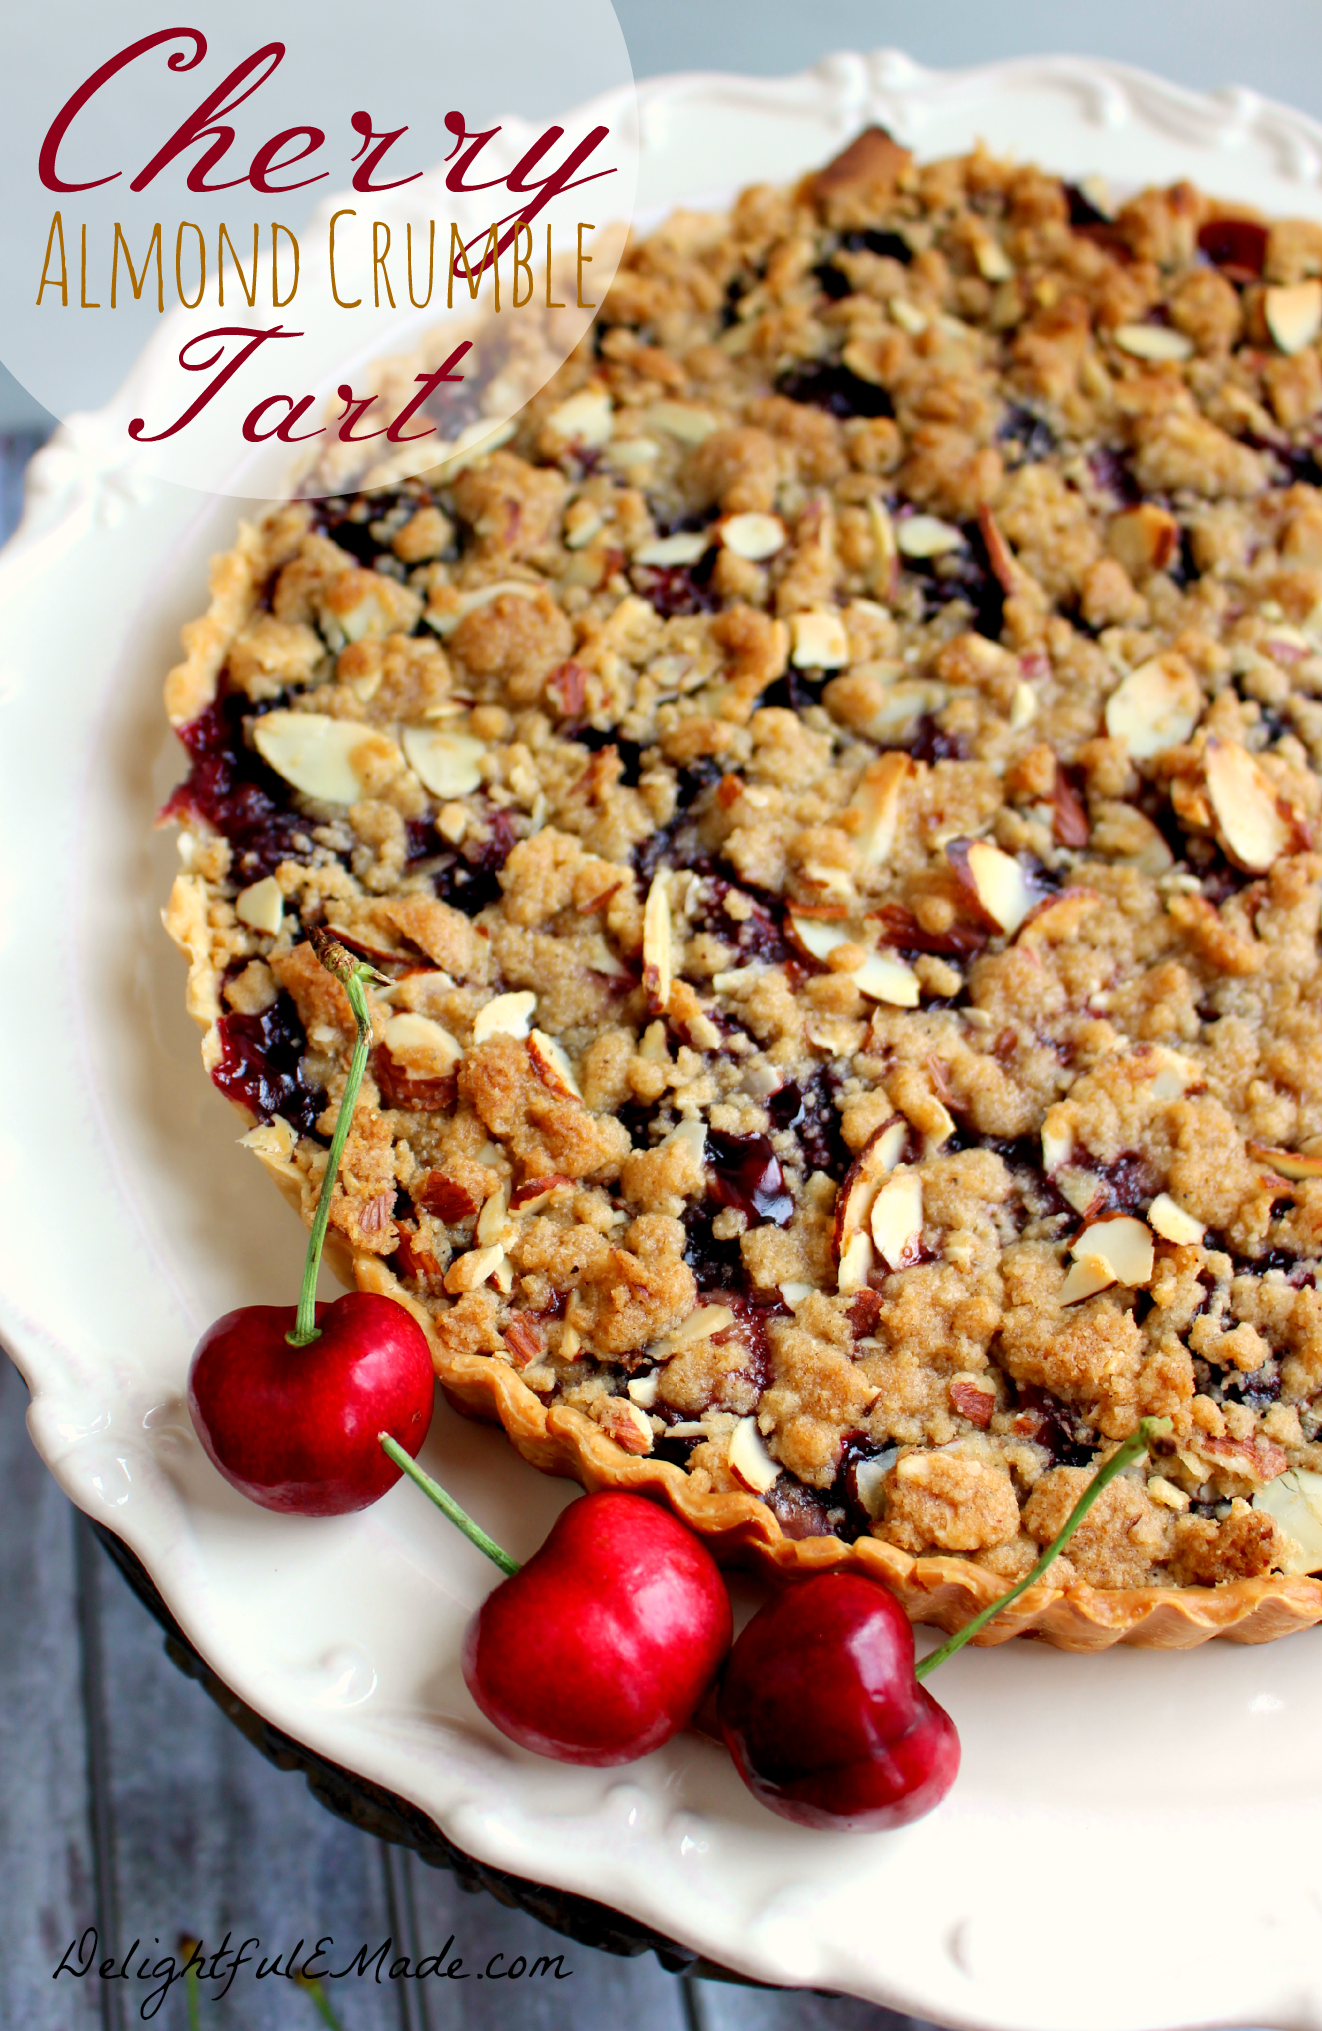 This delicious tart is filled with the flavors of summer! Super-simple to make, as it uses a store-bought pie crust, along with fresh cherries. Incredible warm out of the oven with a big scoop of ice cream! Delightful Emade #OMHGWW